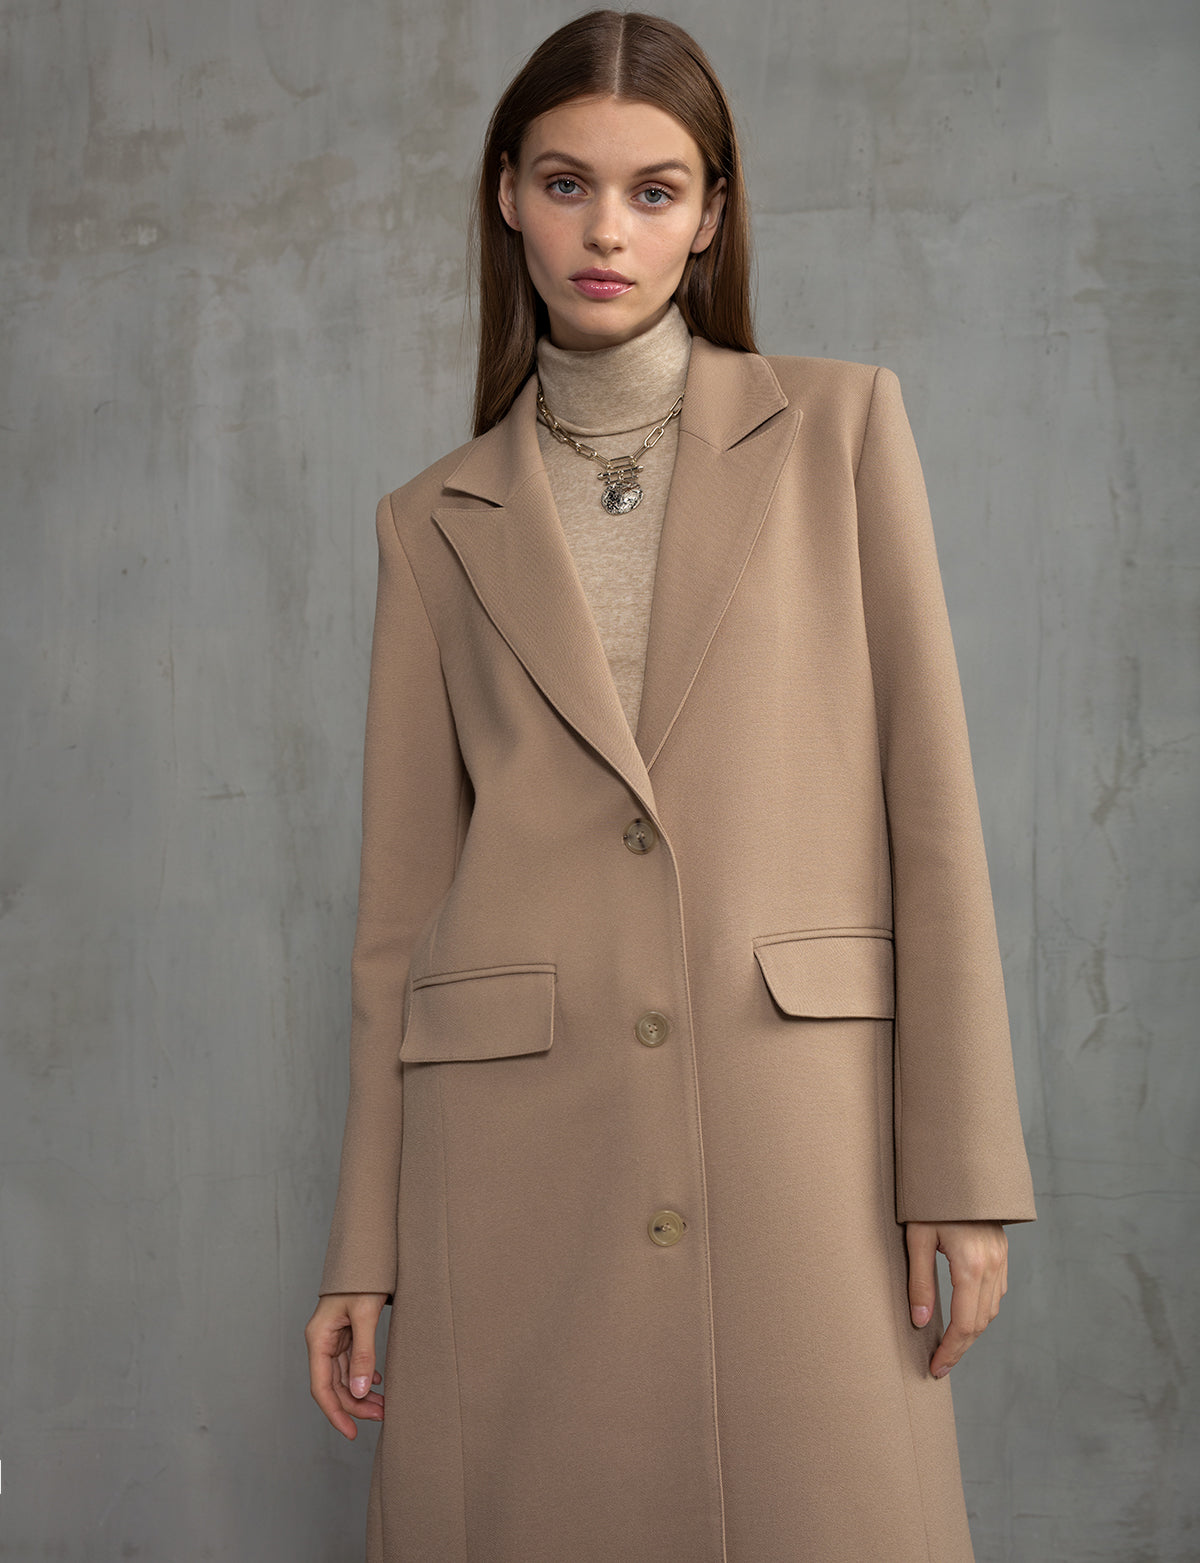 Woman wearing tan, oversized, blazer coat with turtleneck